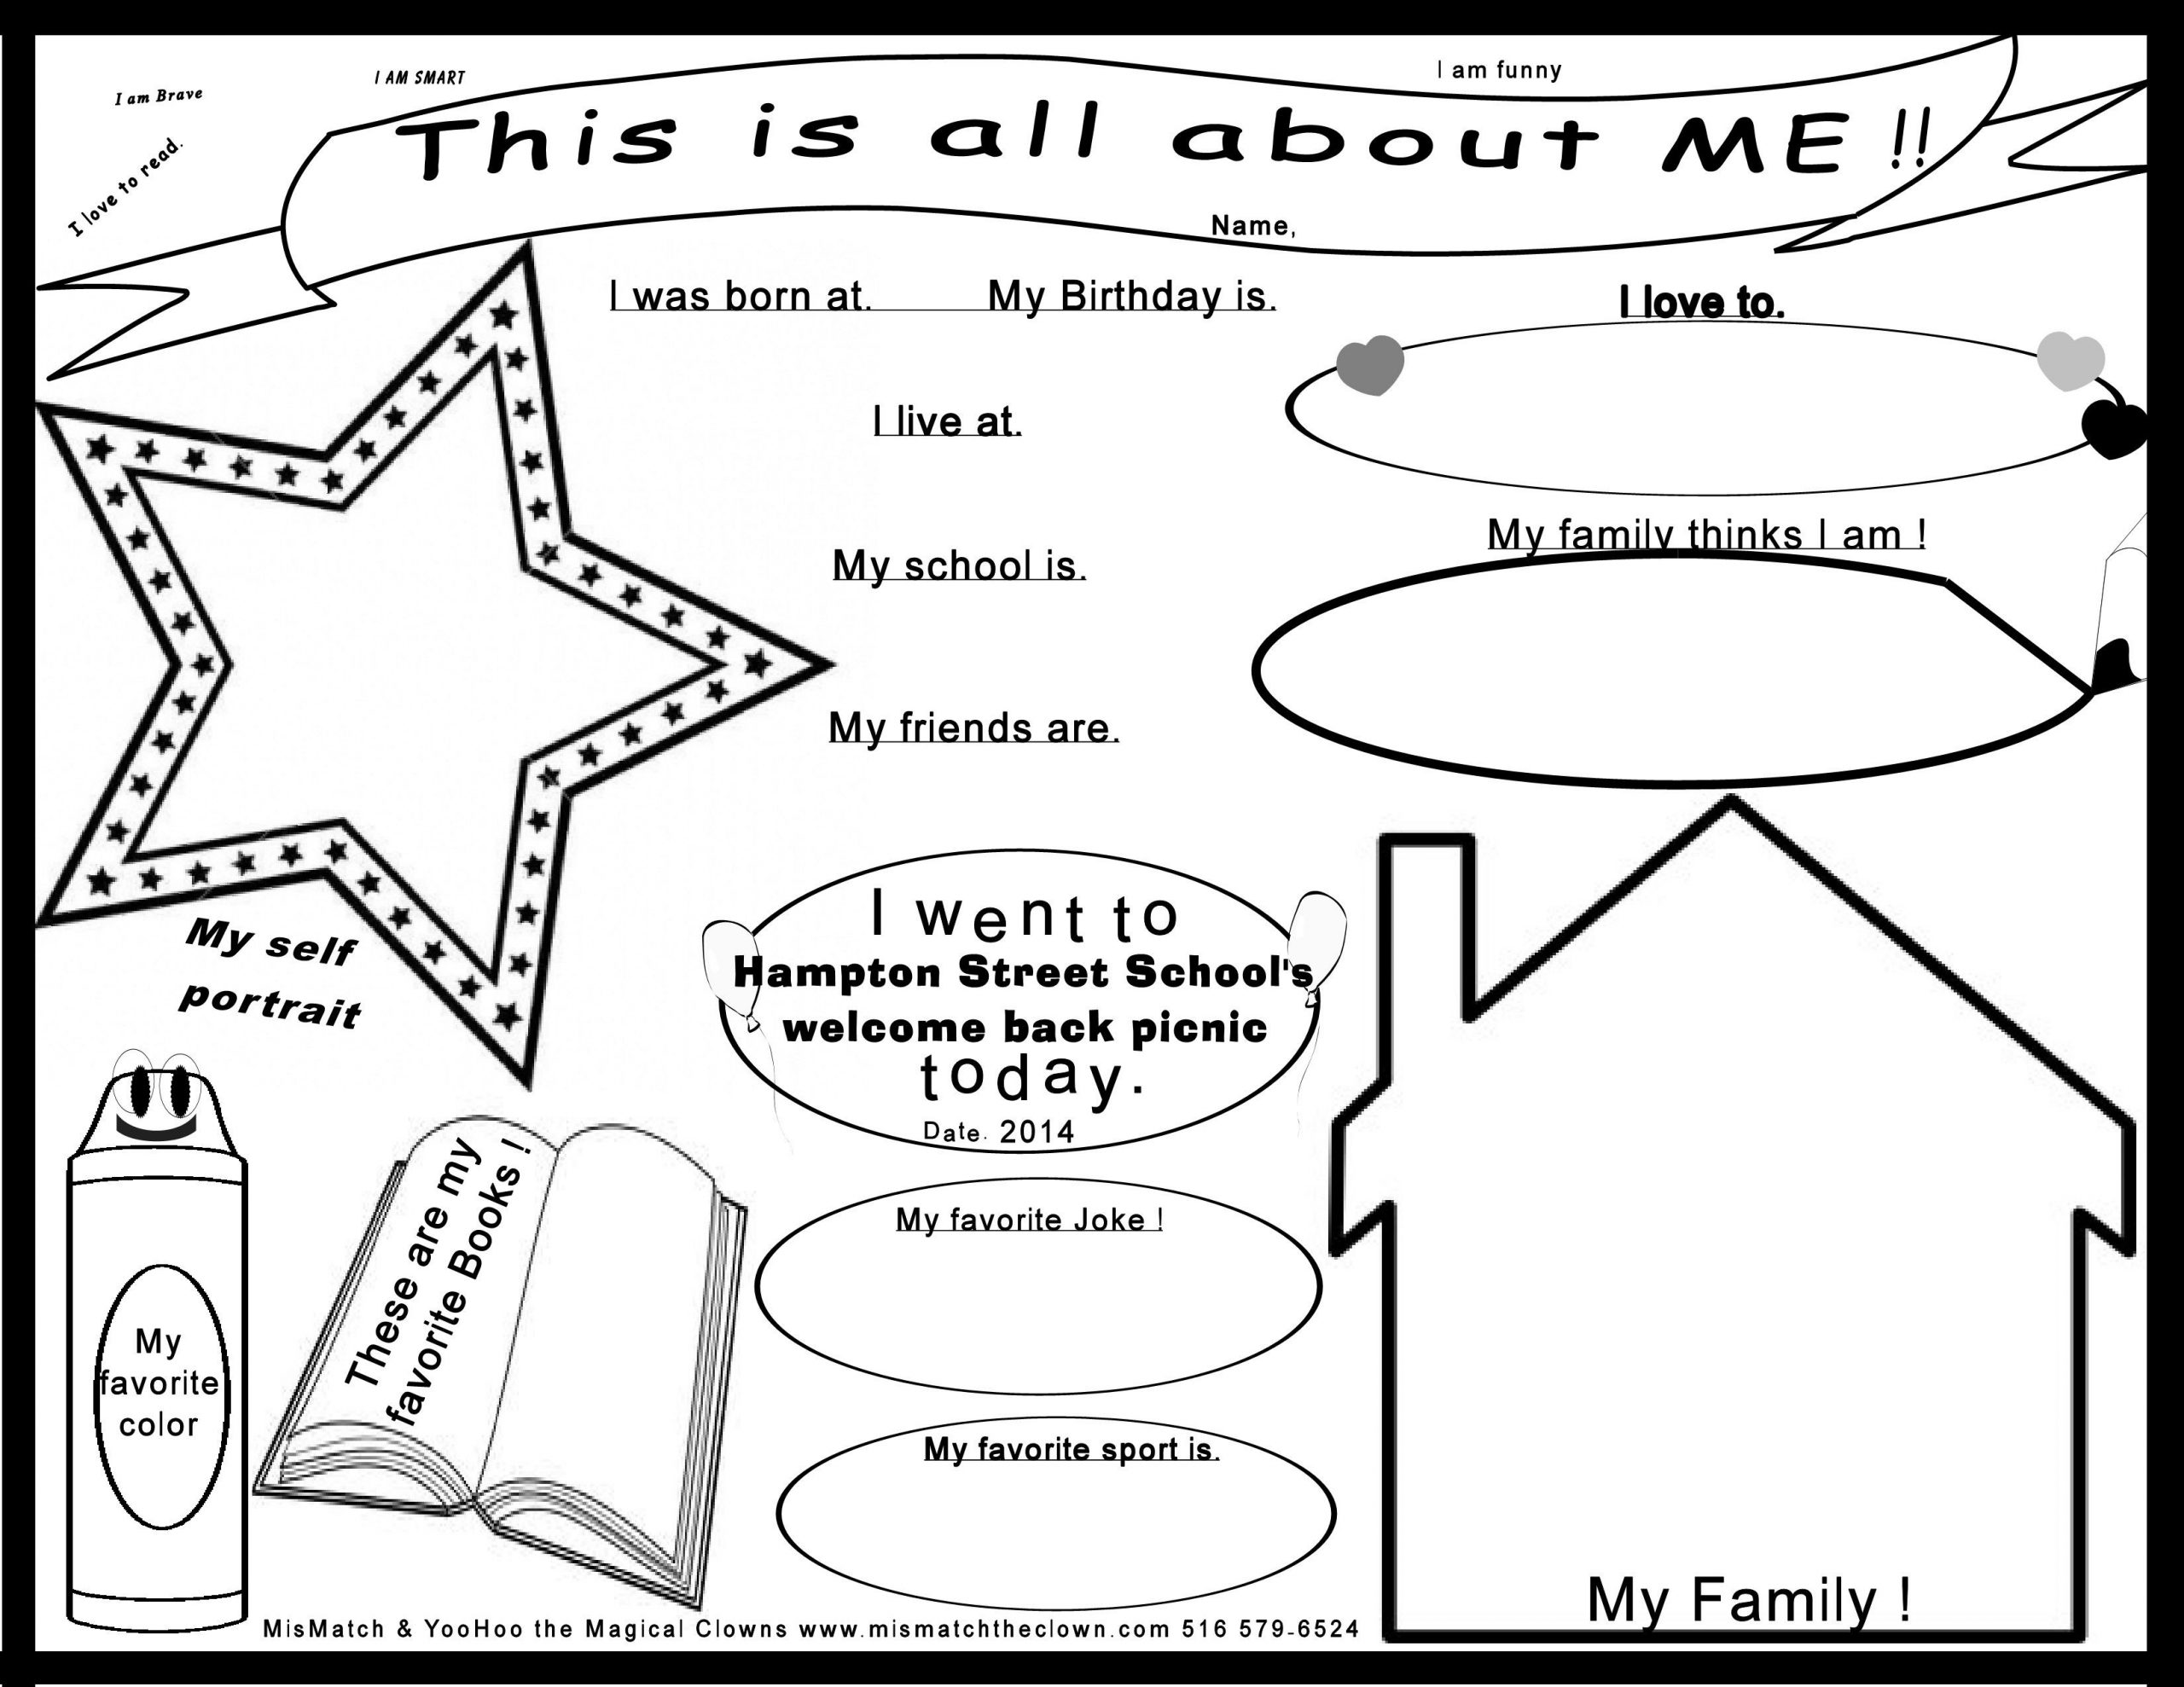 All About Me Worksheet Preschool This Printout All About Me Worksheet is Great Fro Kids